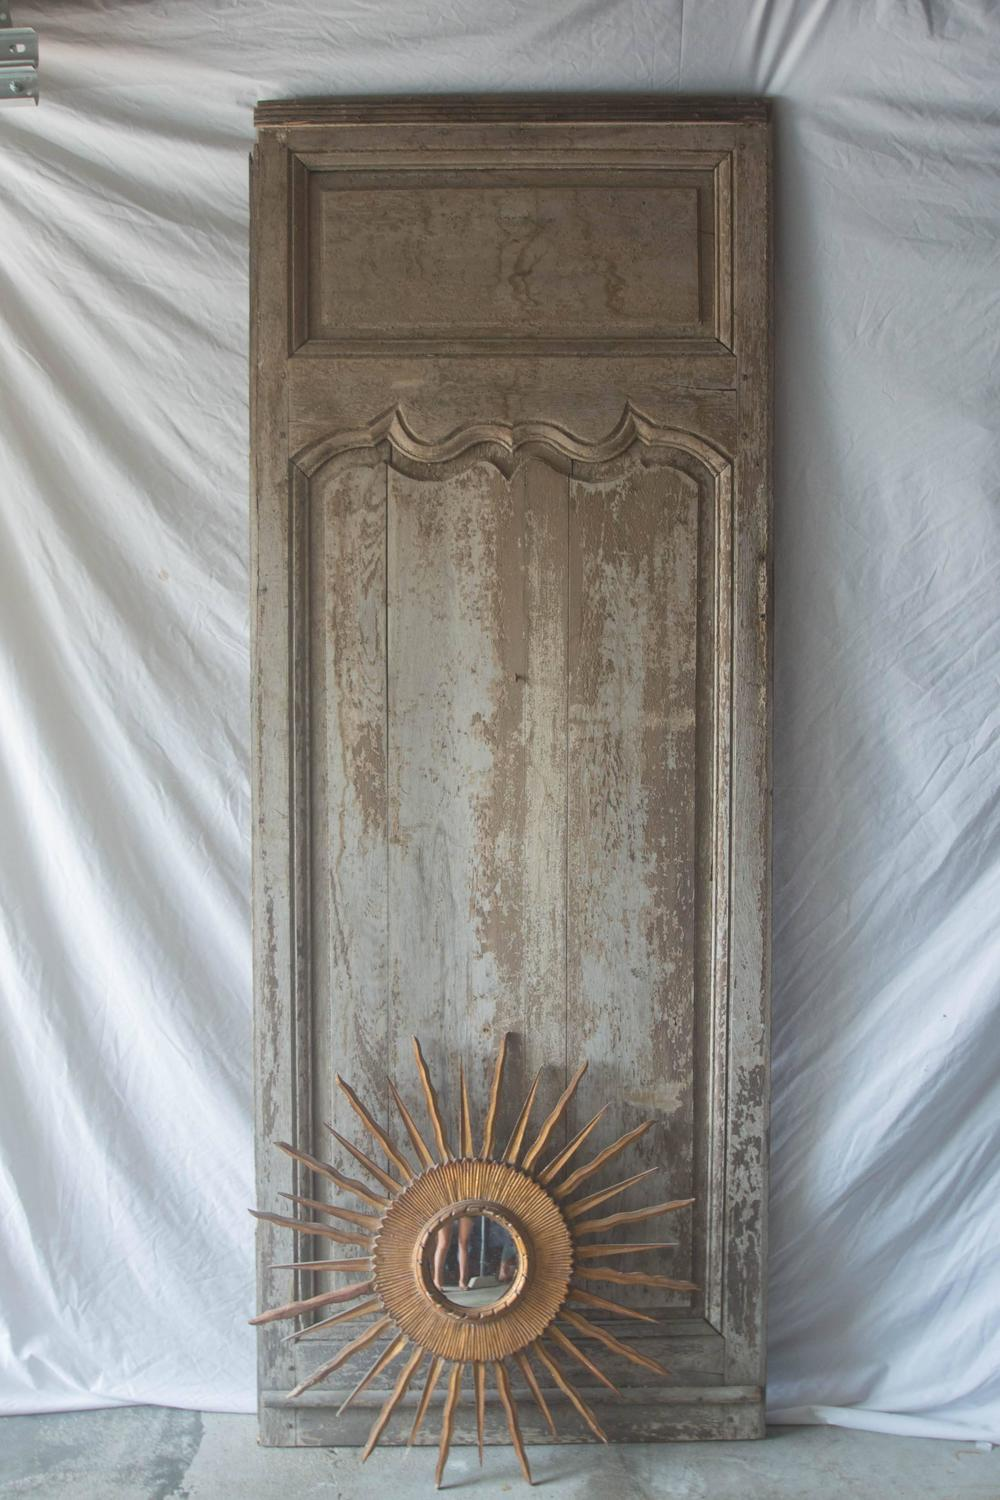 18th Century French Panel Or Door With Soleil For Sale At